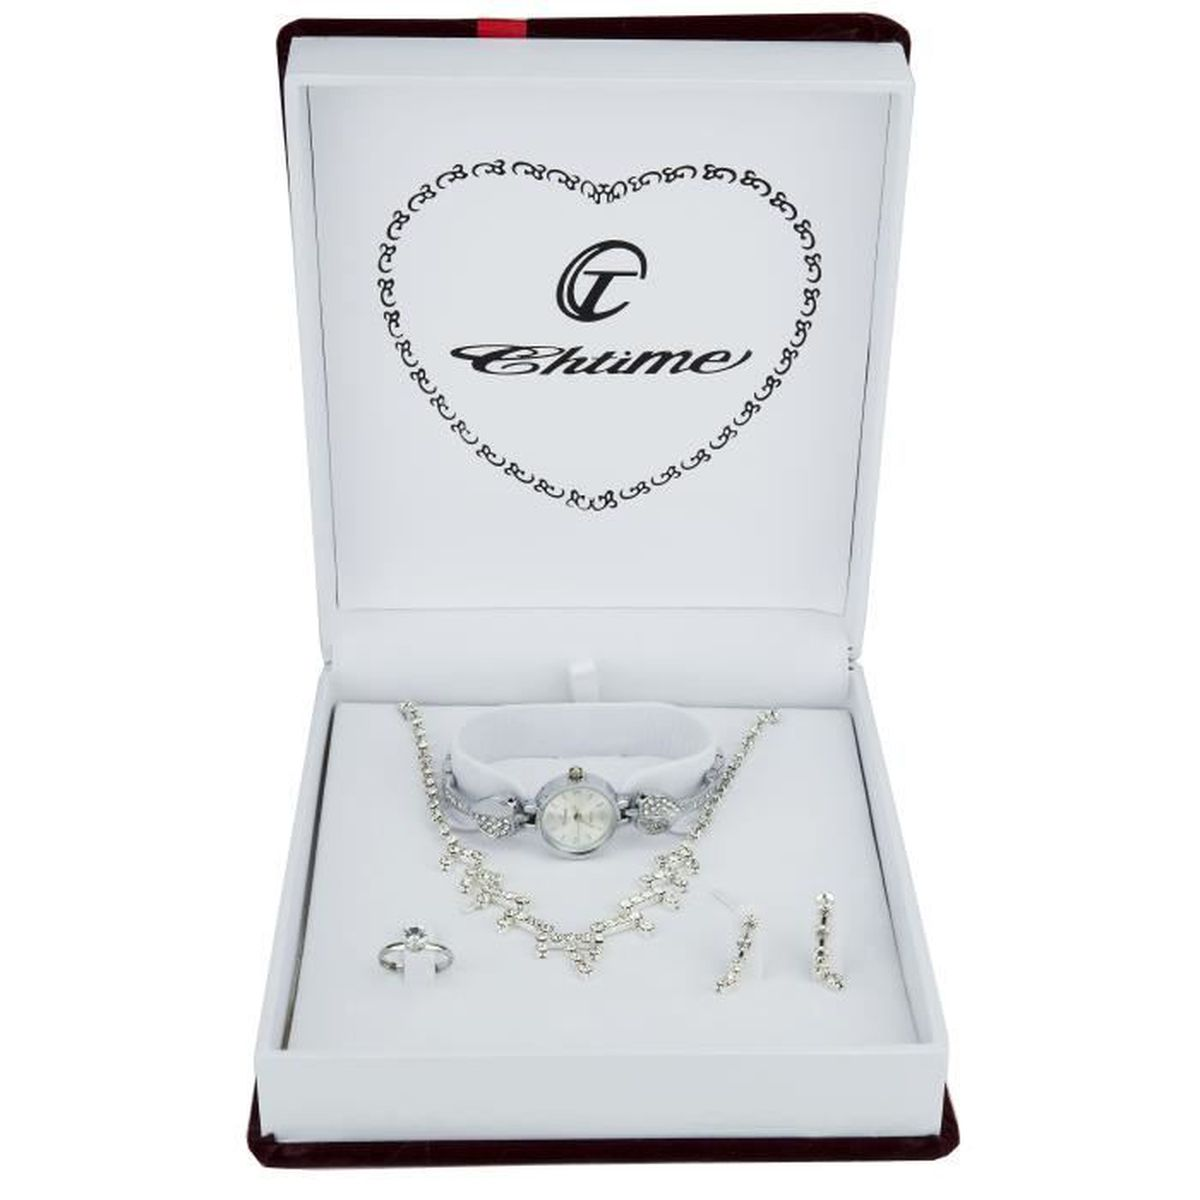 coffret cadeau montre femme argent parure de bijoux. Black Bedroom Furniture Sets. Home Design Ideas